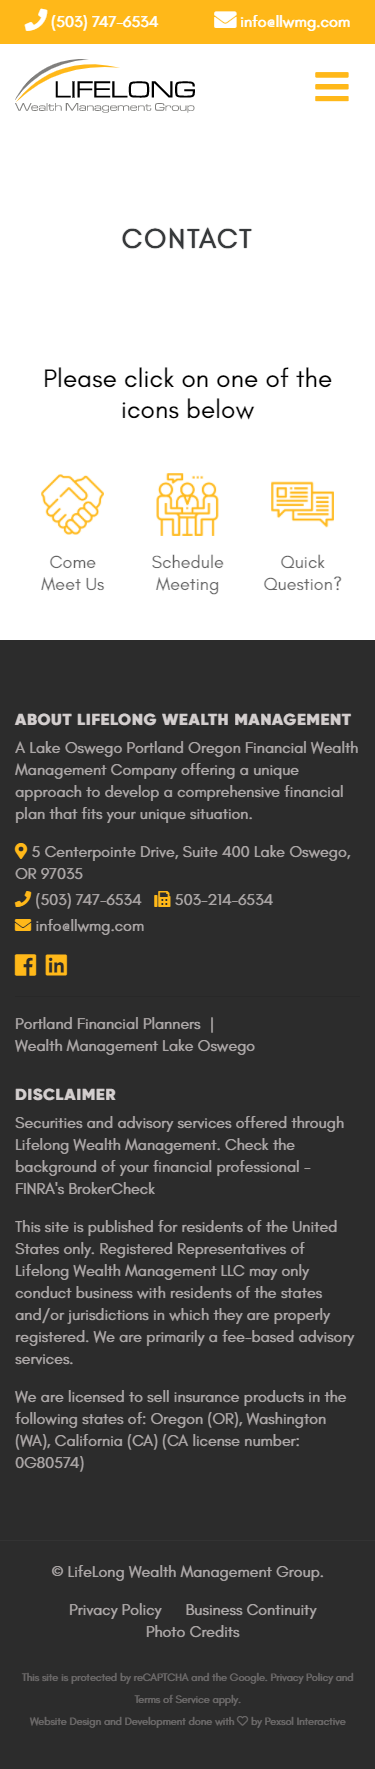 Lifelong Wealth Management Group Website Mobile Mockup 3